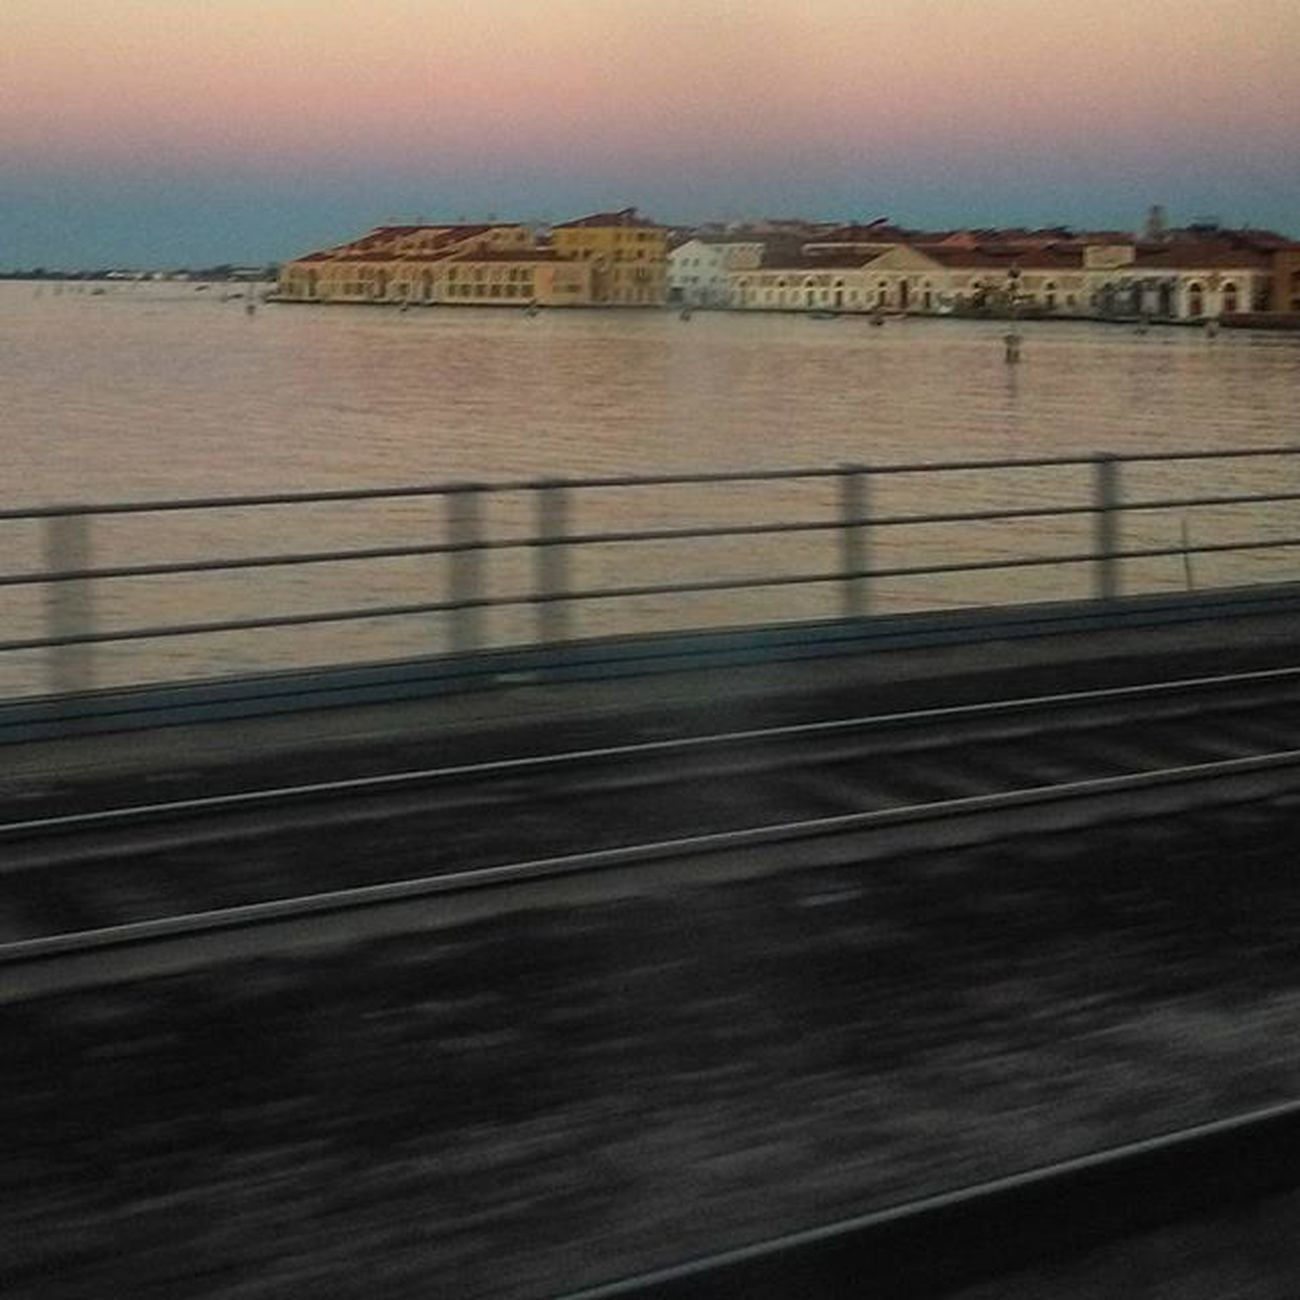 Nofilterneeded for a Peacefulsunset in Venice Instamoments Gooddays